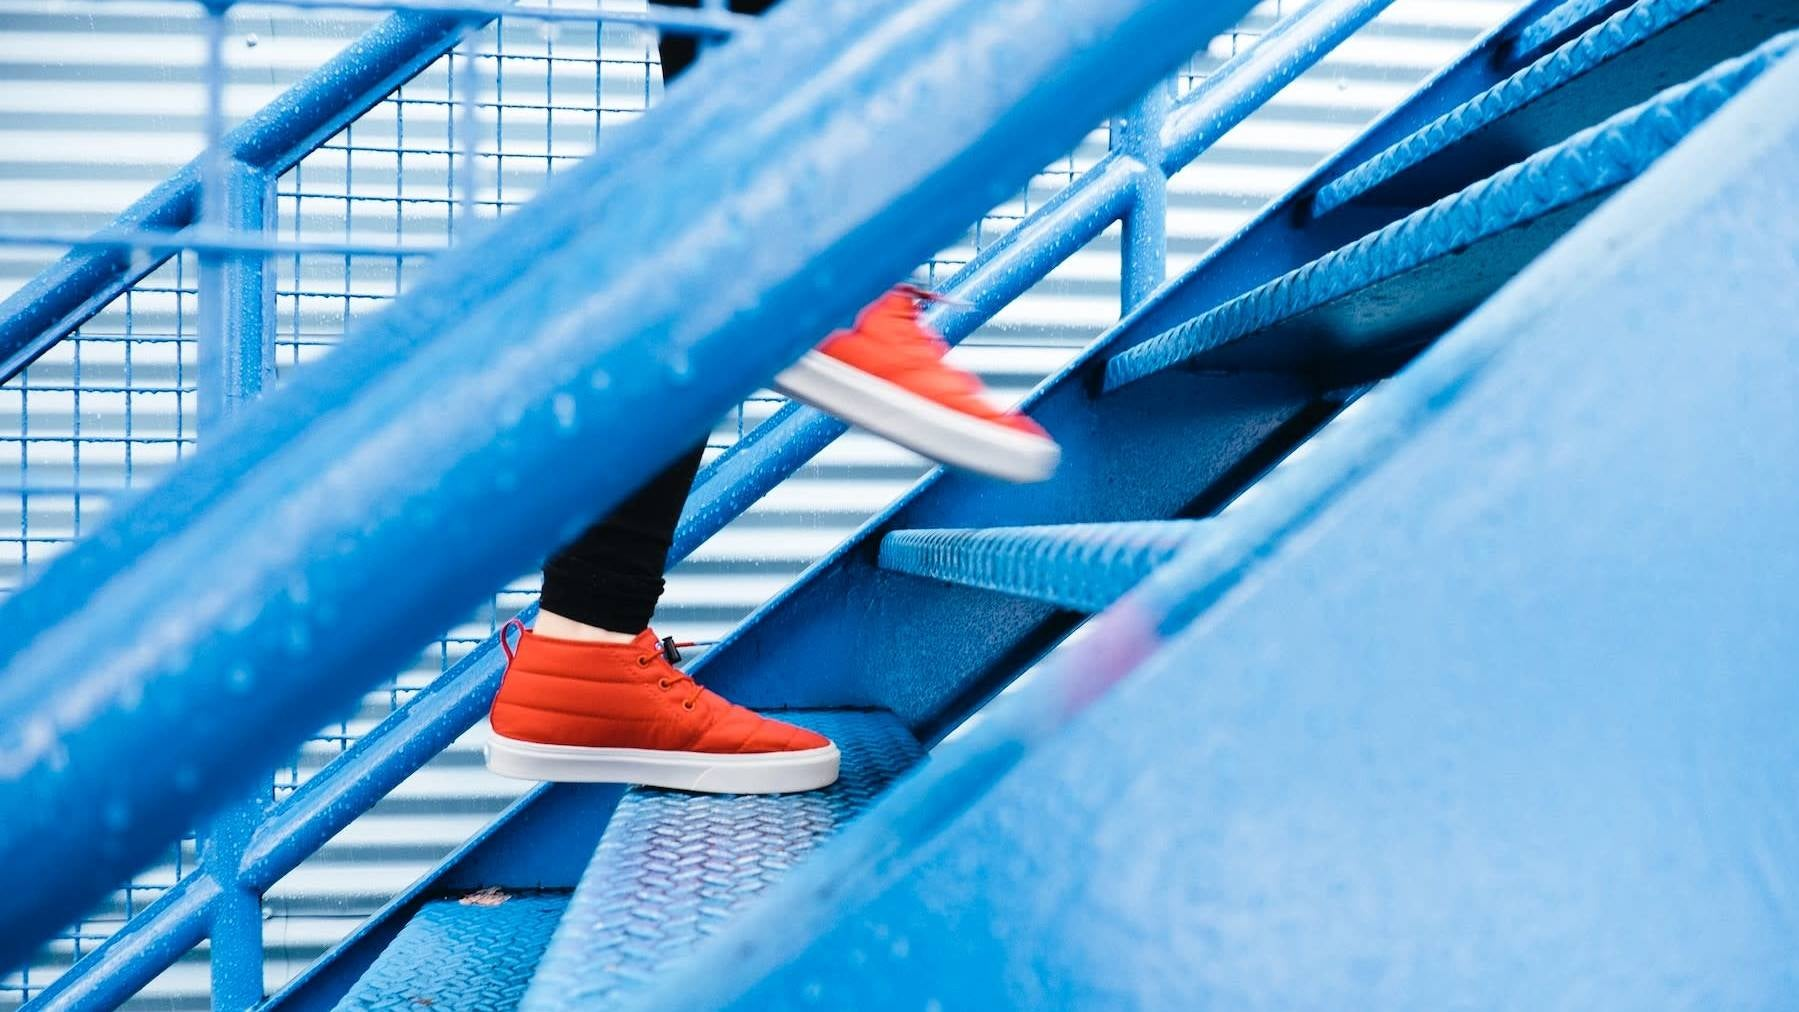 This Month's Fitness Challenge Theme Is Stairs